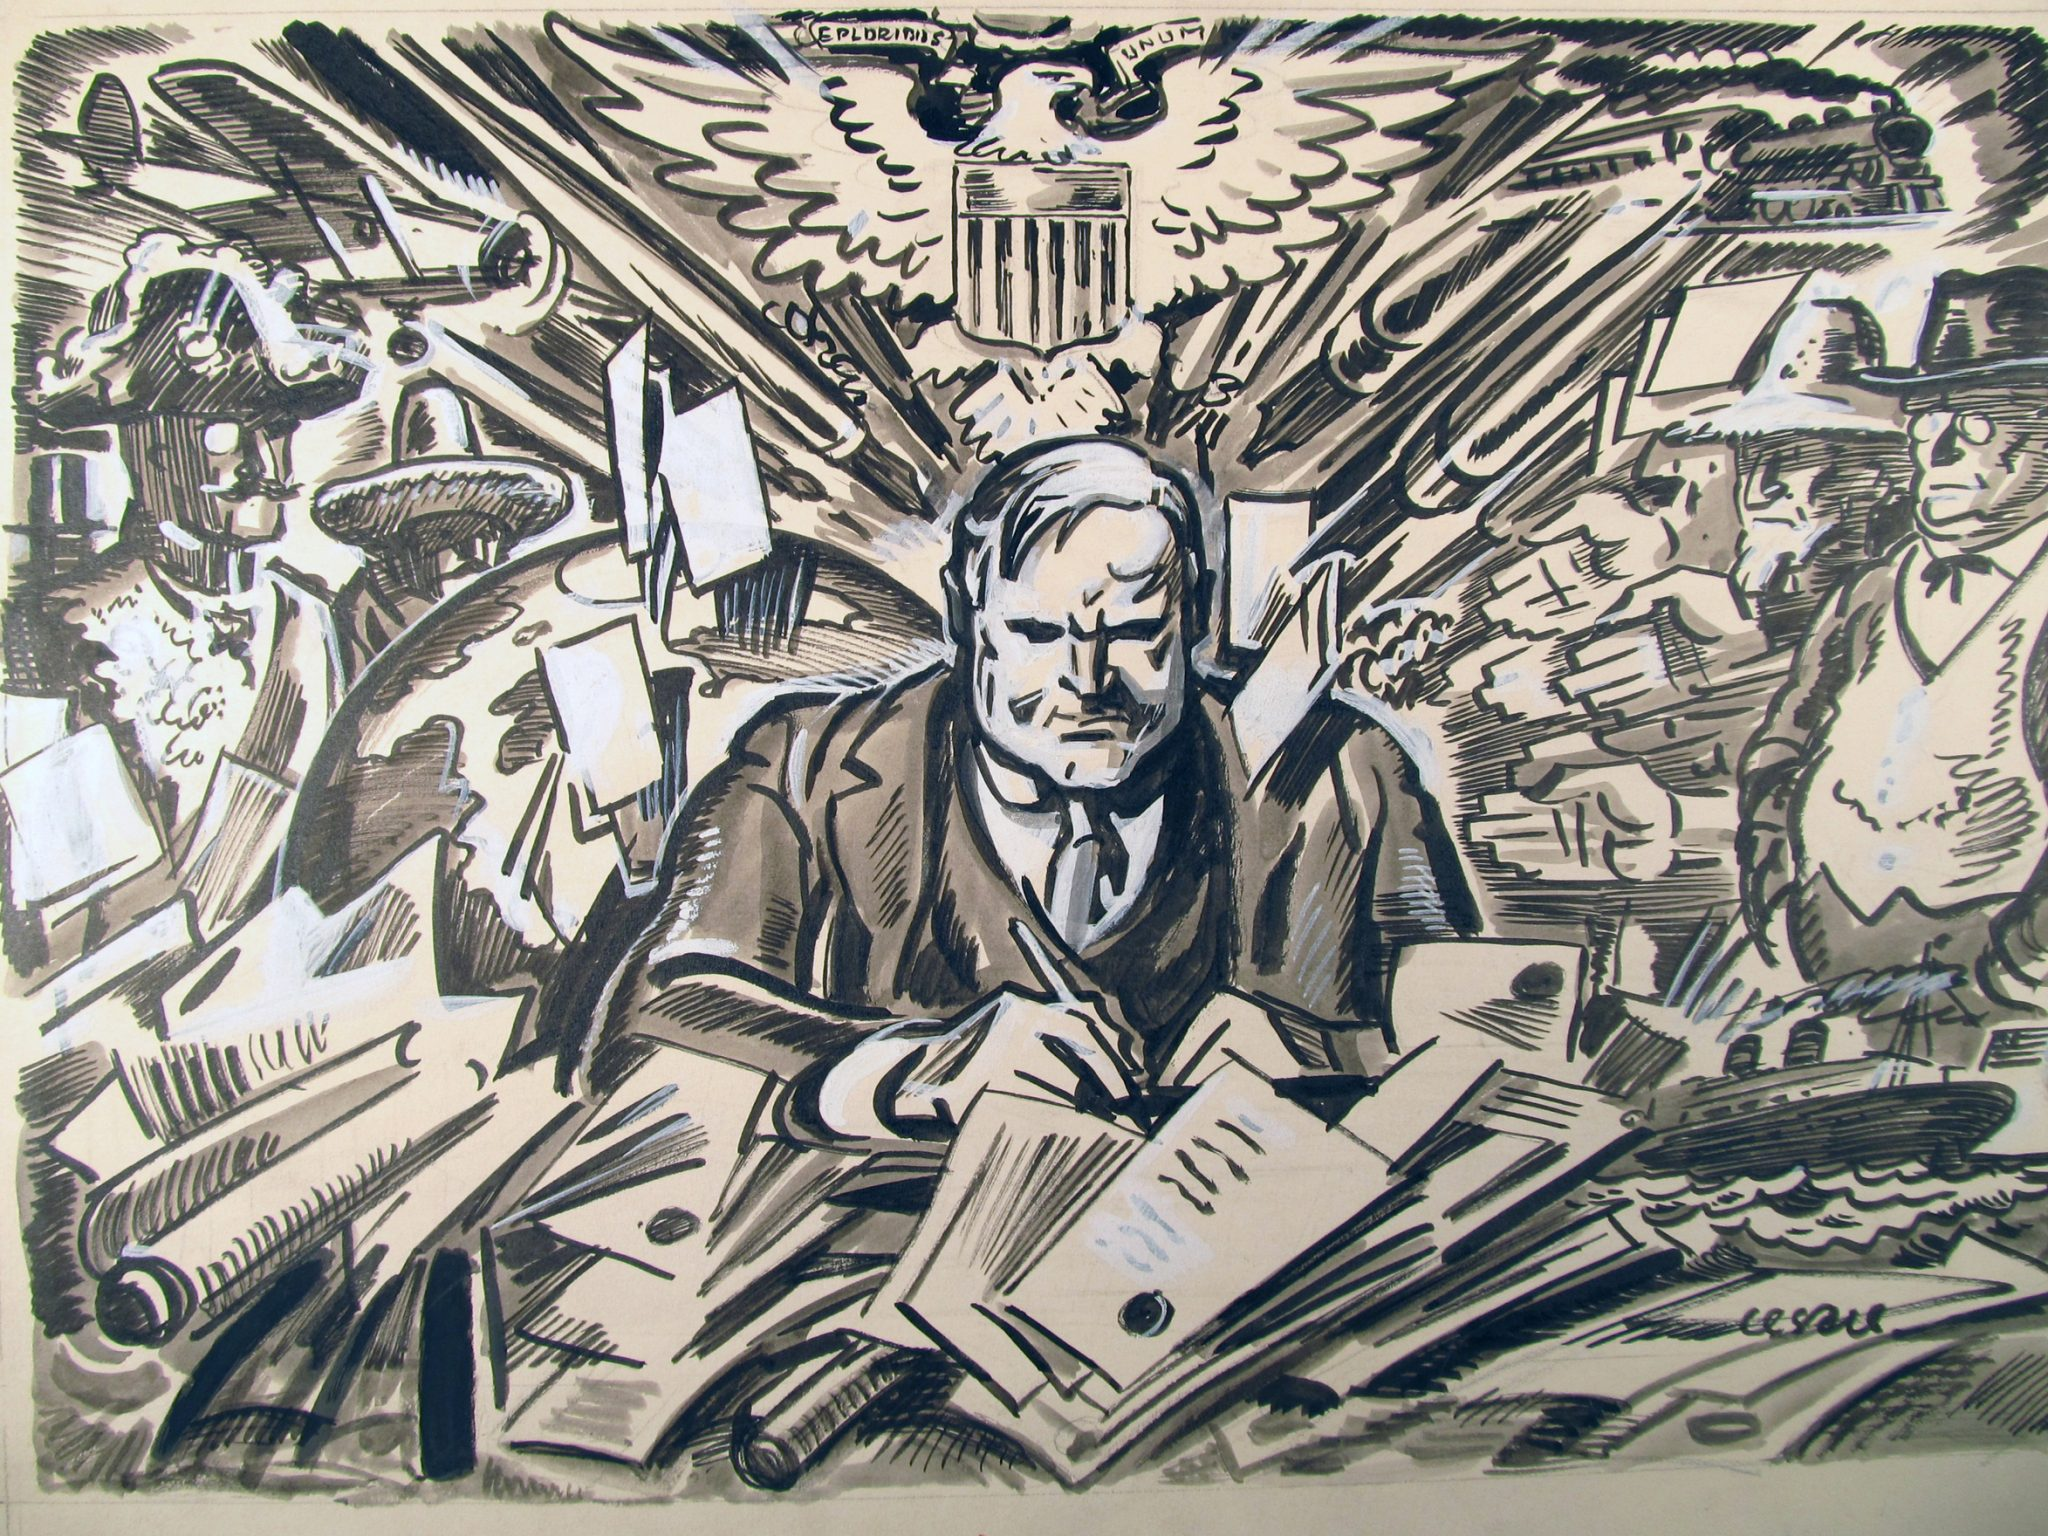 Herbert<em>Hoover</em>as<em>the</em>new<em>President,</em>March<em>17,</em>1929.by<em>Oscar</em>Cesare.original<em>drawing</em>kriza<em>USA</em>chudoba_nezamestnanost